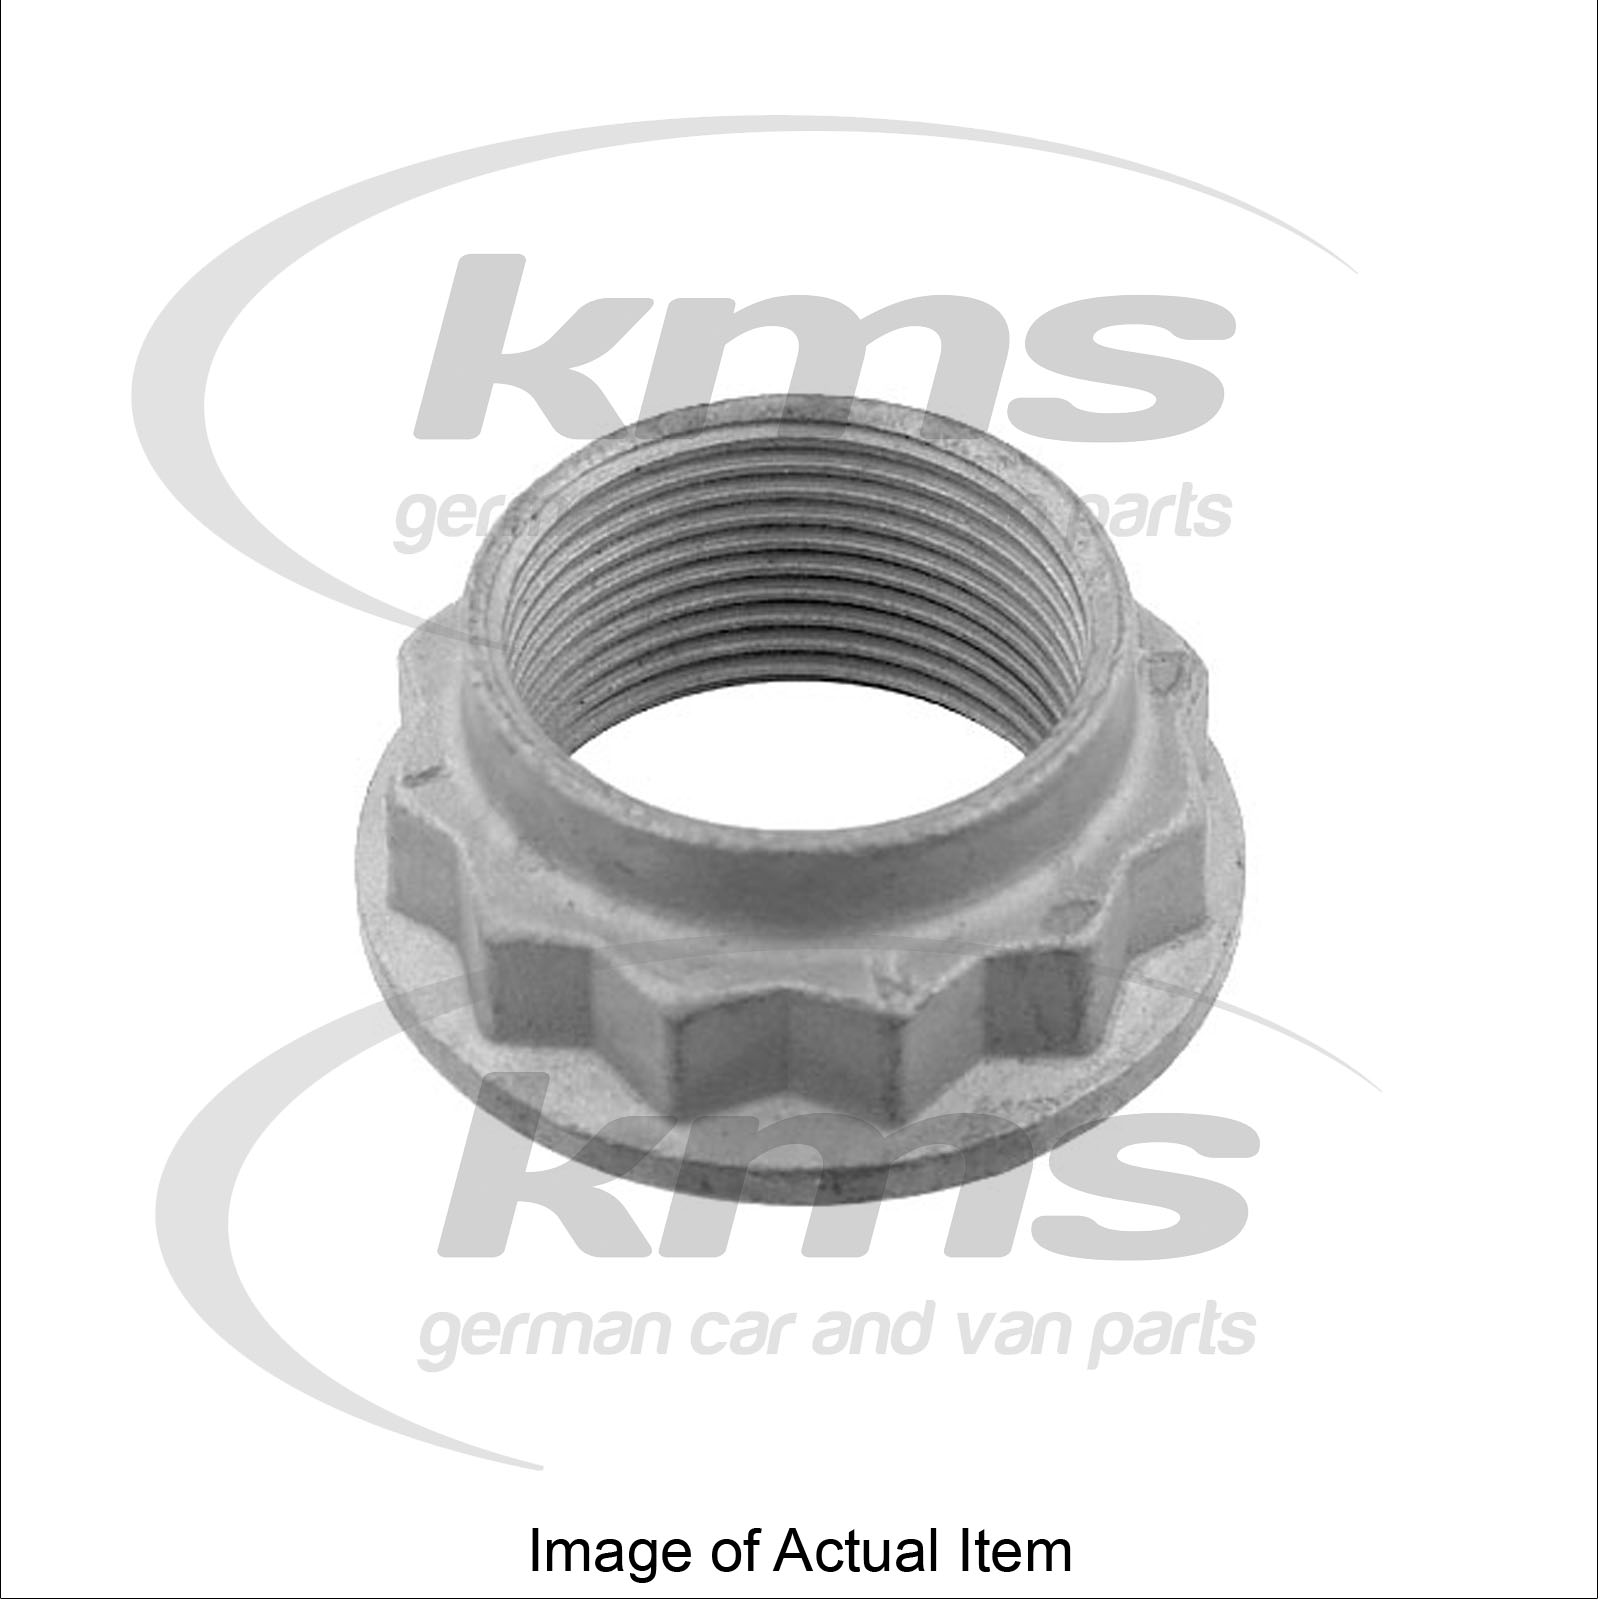 Wheel hub nut mercedes benz e class convertible e250cgi Mercedes benz wheel nuts